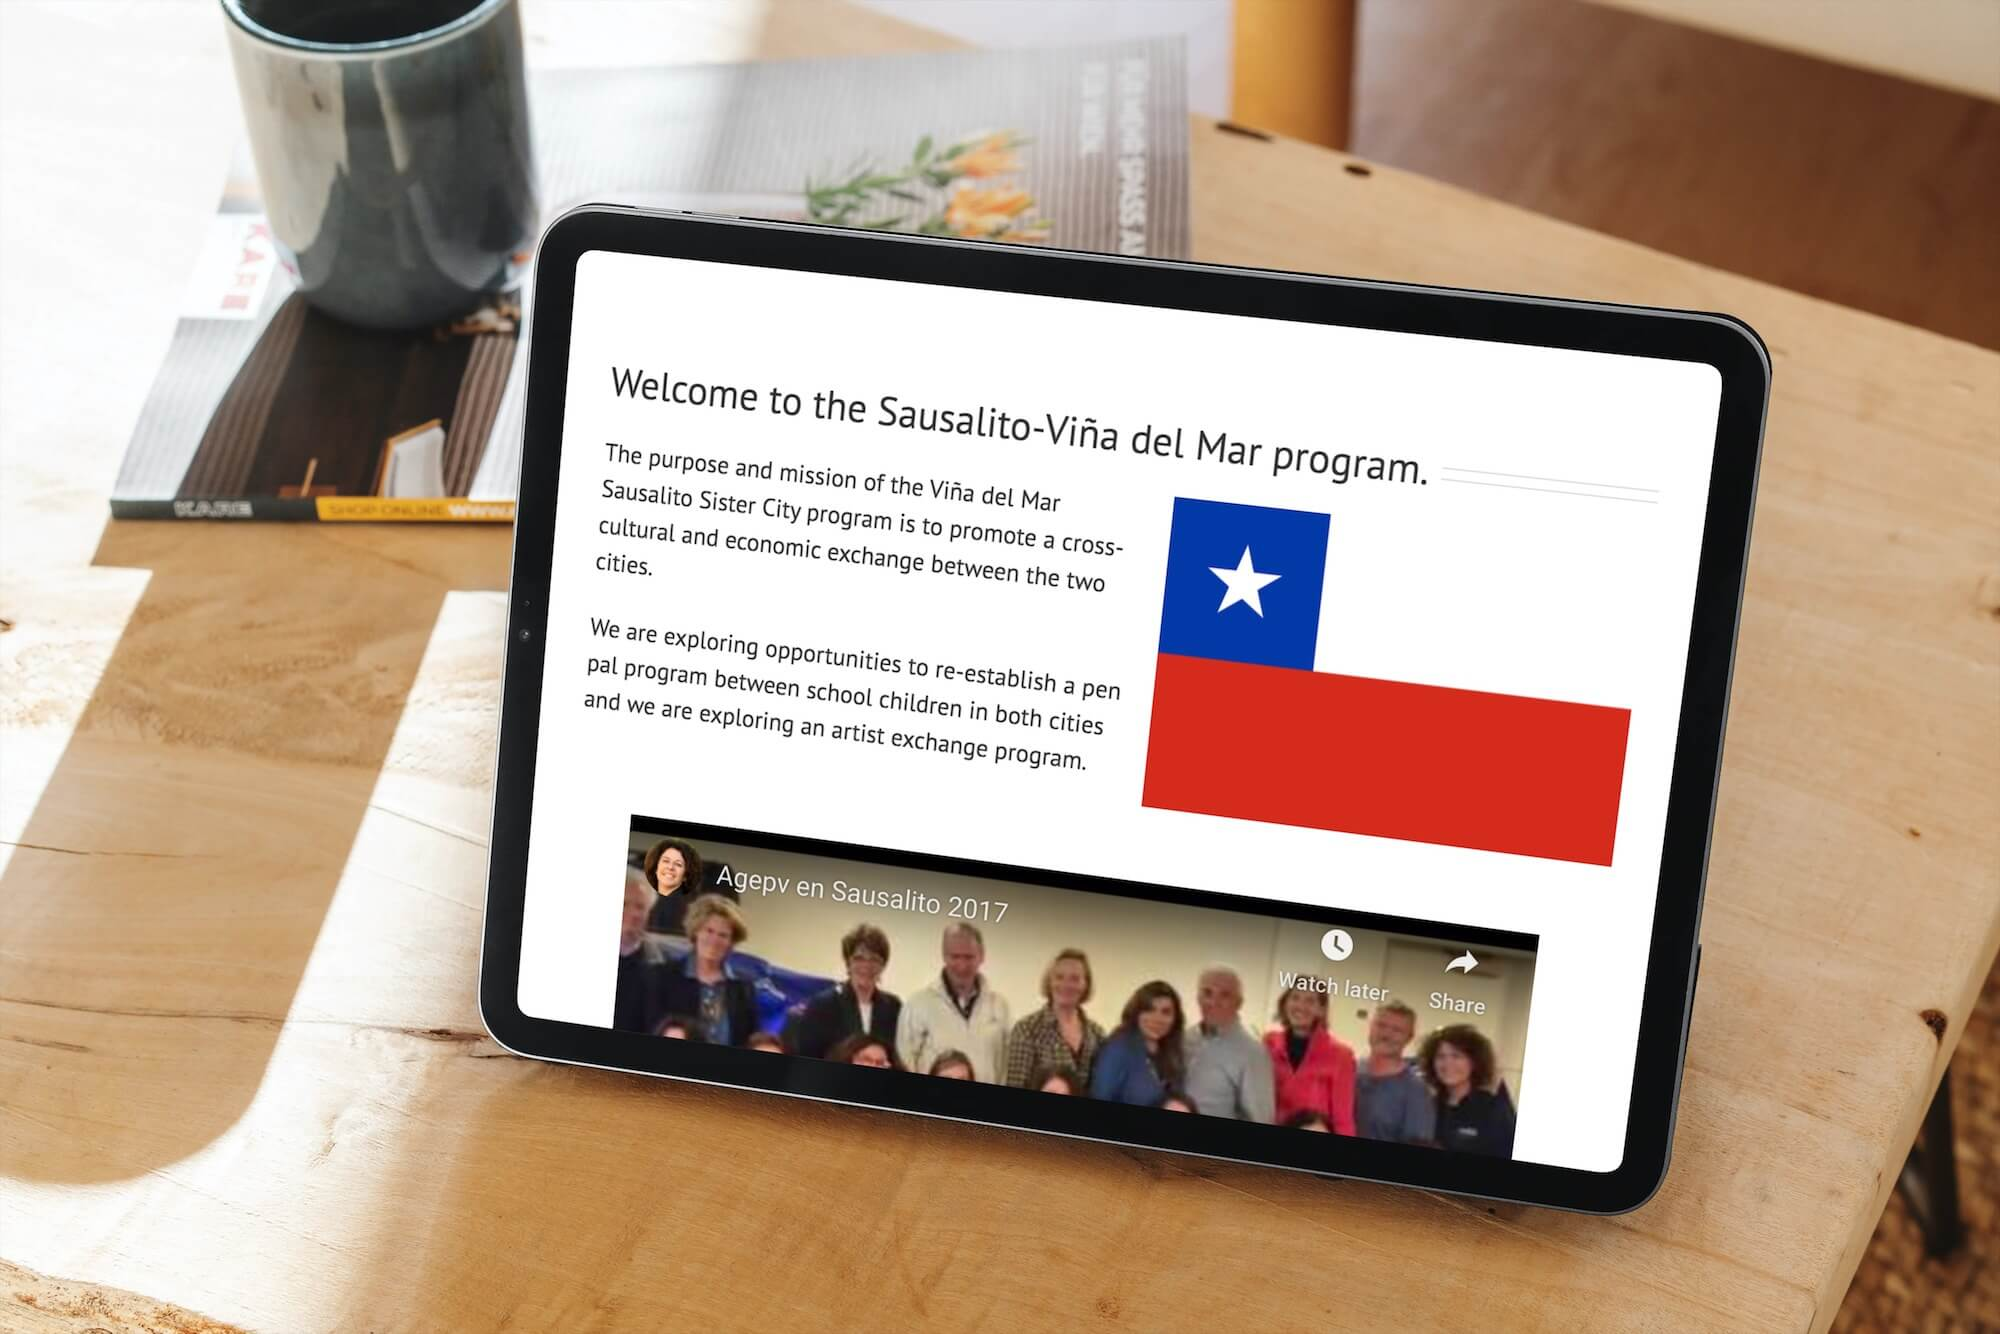 Tablet showing webpage from sausalito sister cities website.